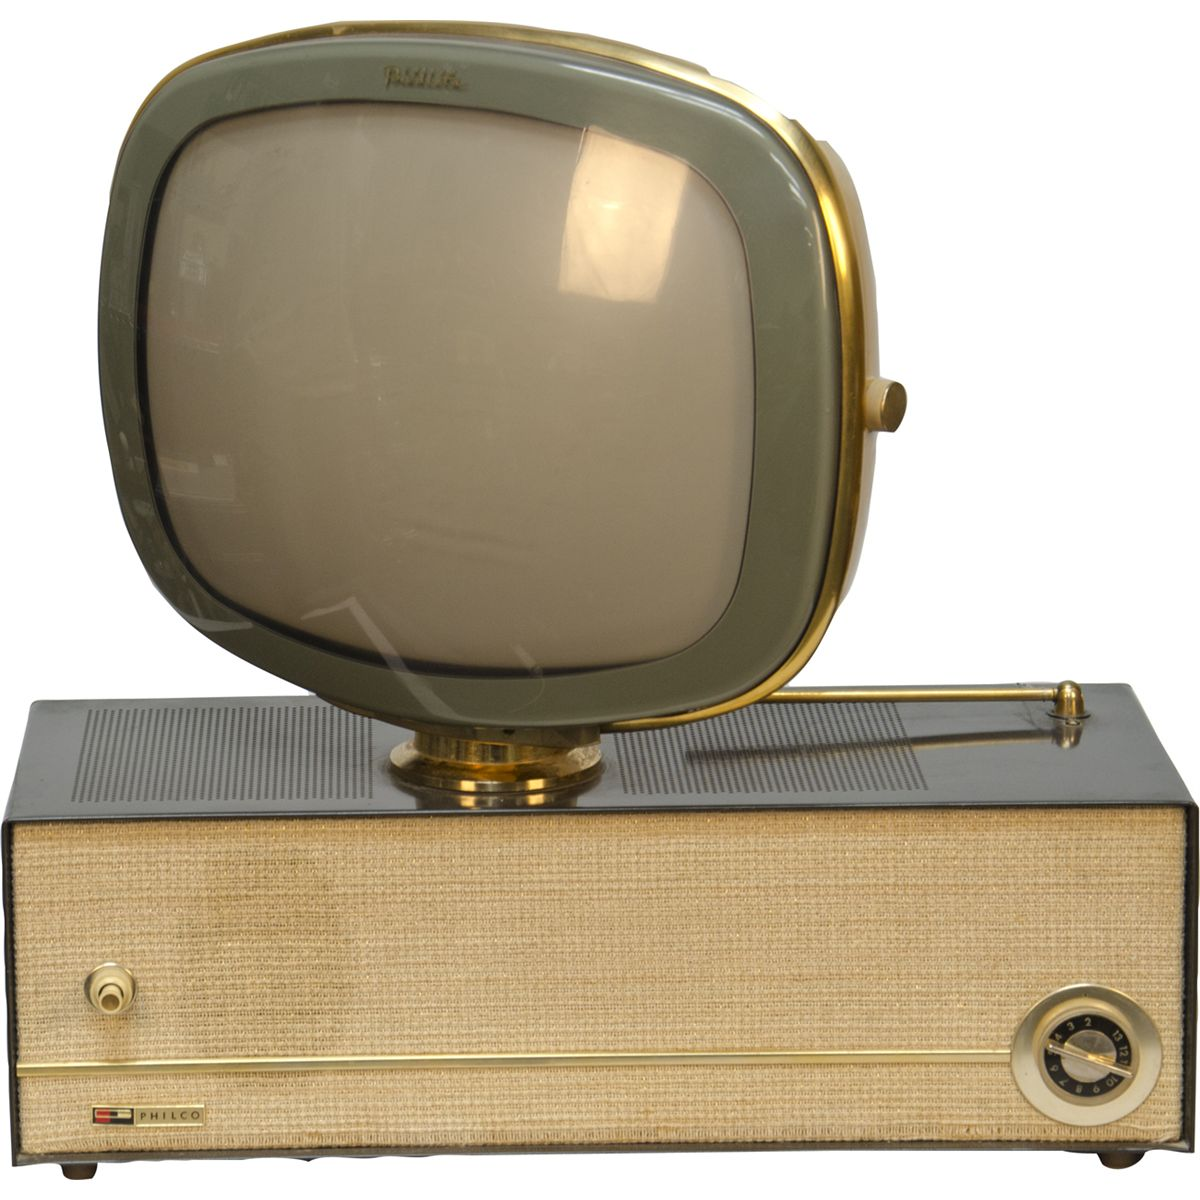 Round screen vintage televisions all clear